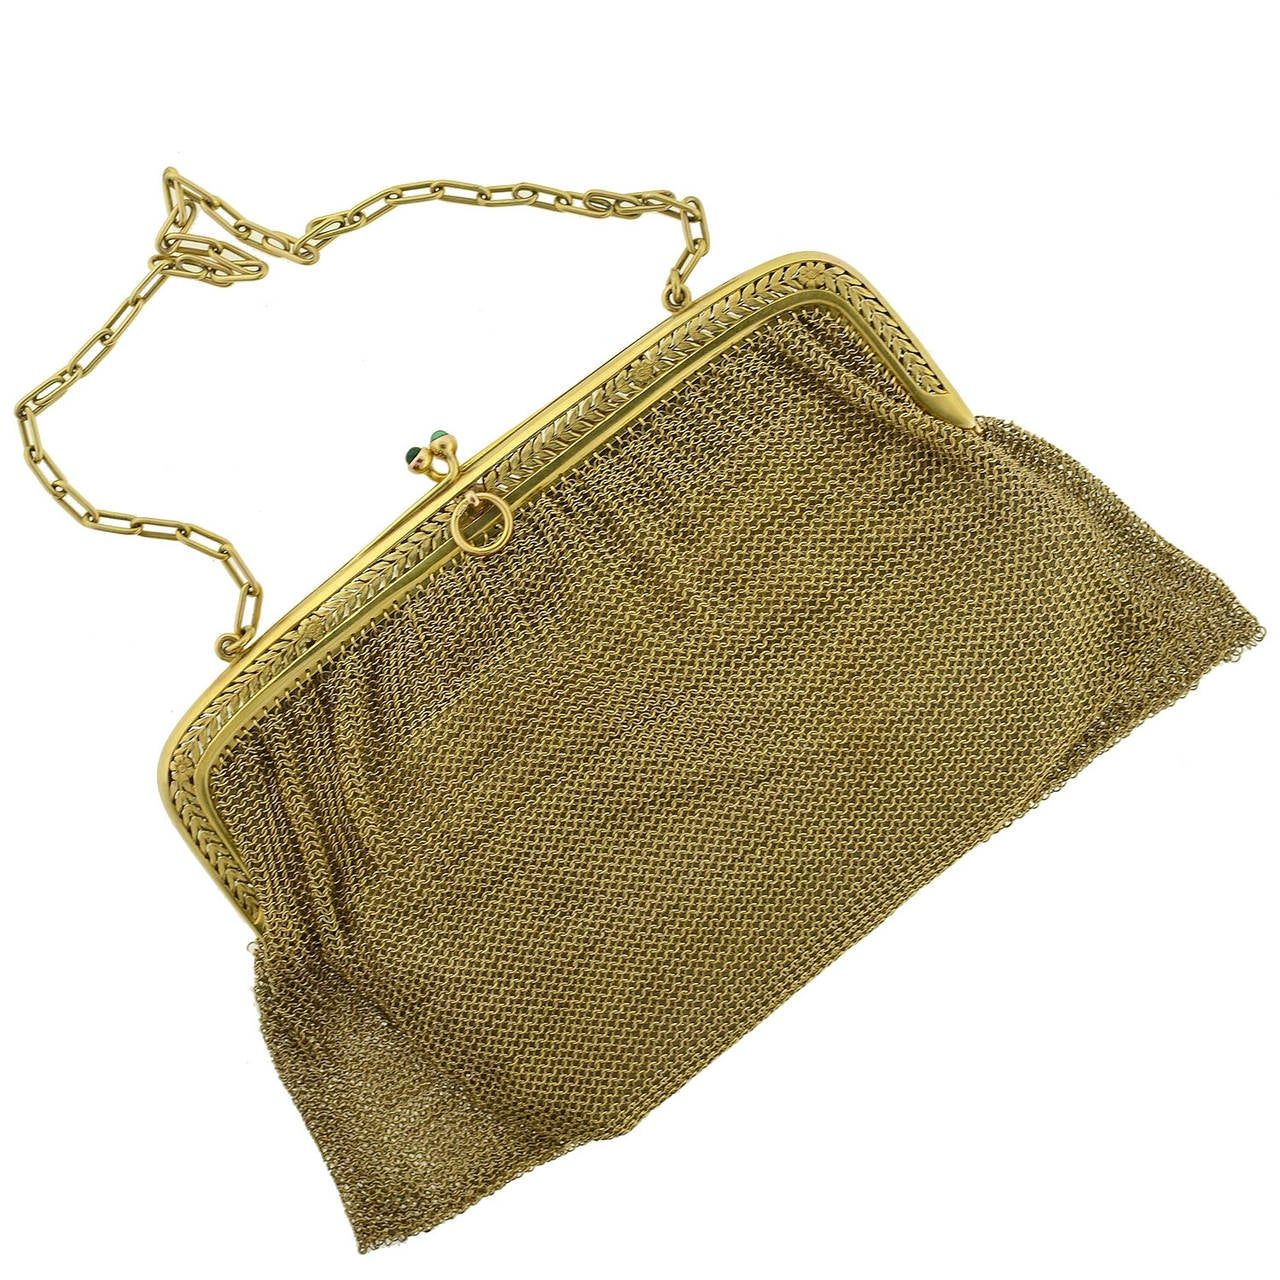 This gold ladies' purse from the Edwardian (ca1910) era is quite a glamorous accessory! The body of the purse is formed by a handcrafted chainmaille design comprised of fine 14kt yellow gold rings, forming a slinky, mesh bag that hangs from a solid